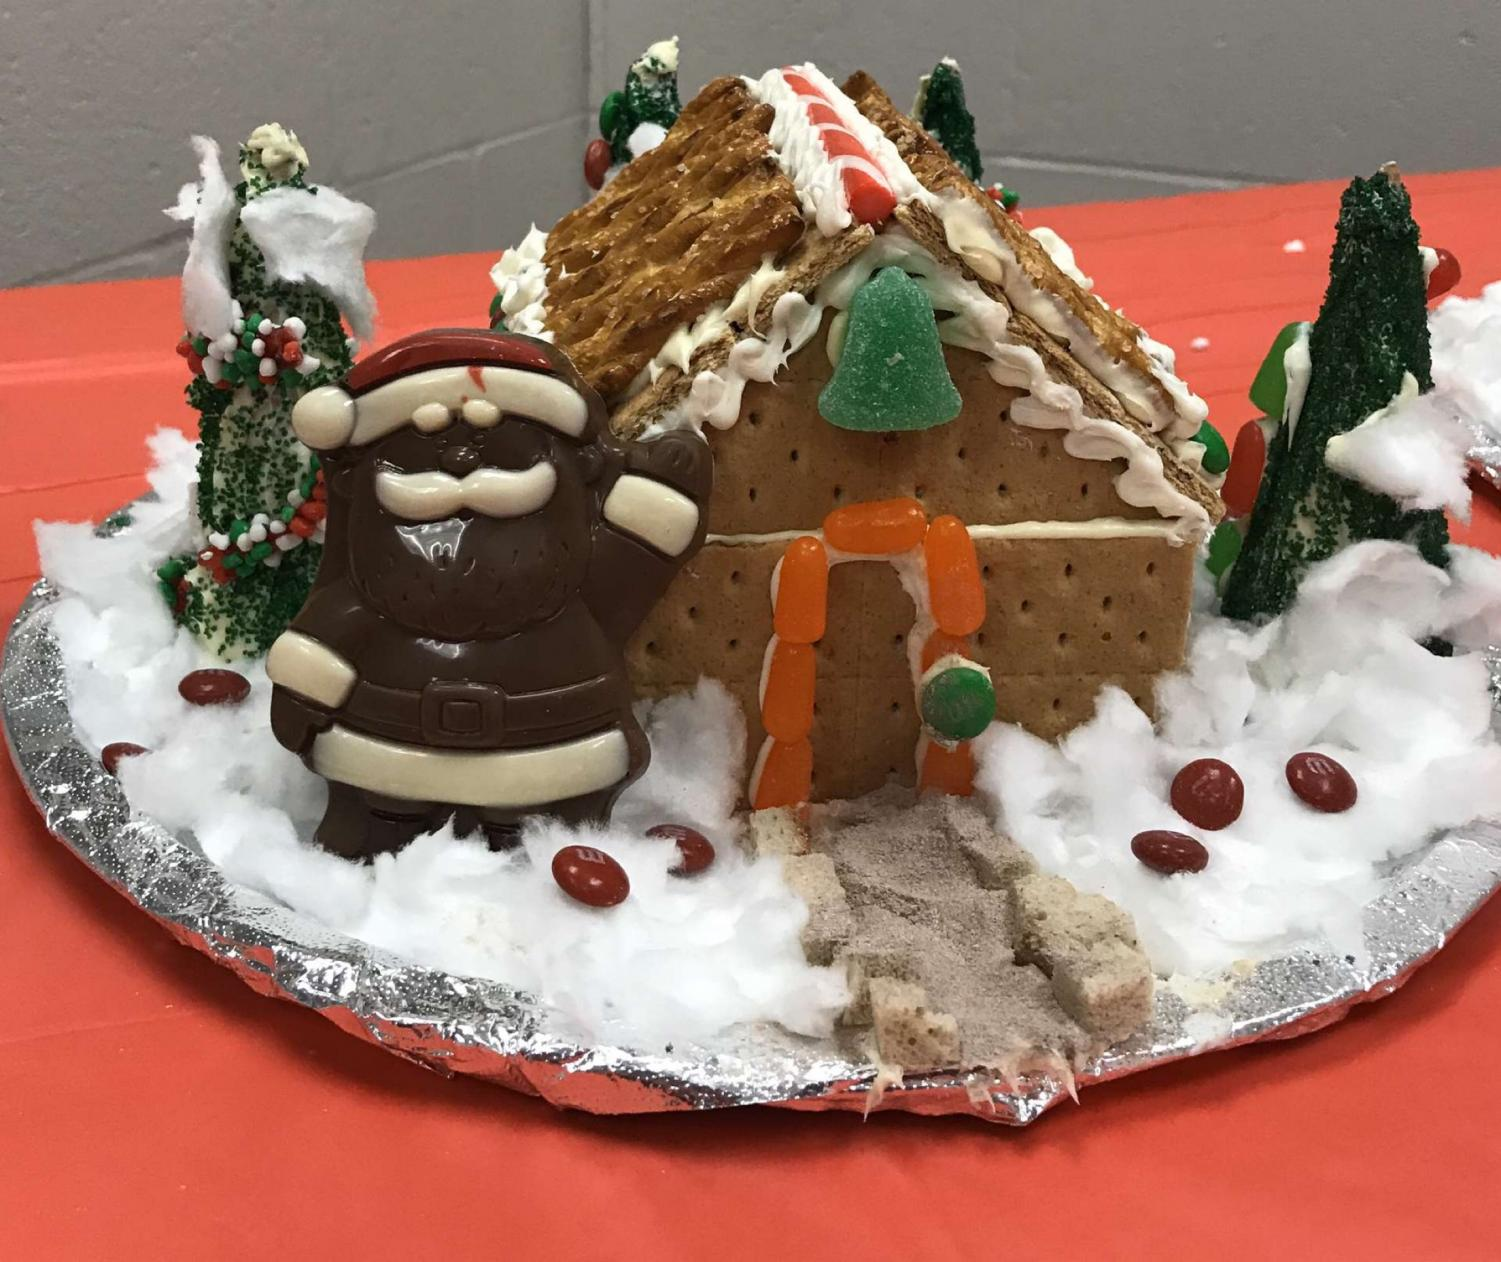 The first-place gingerbread house was constructed with a chocolate Santa and trees surrounding the structure.